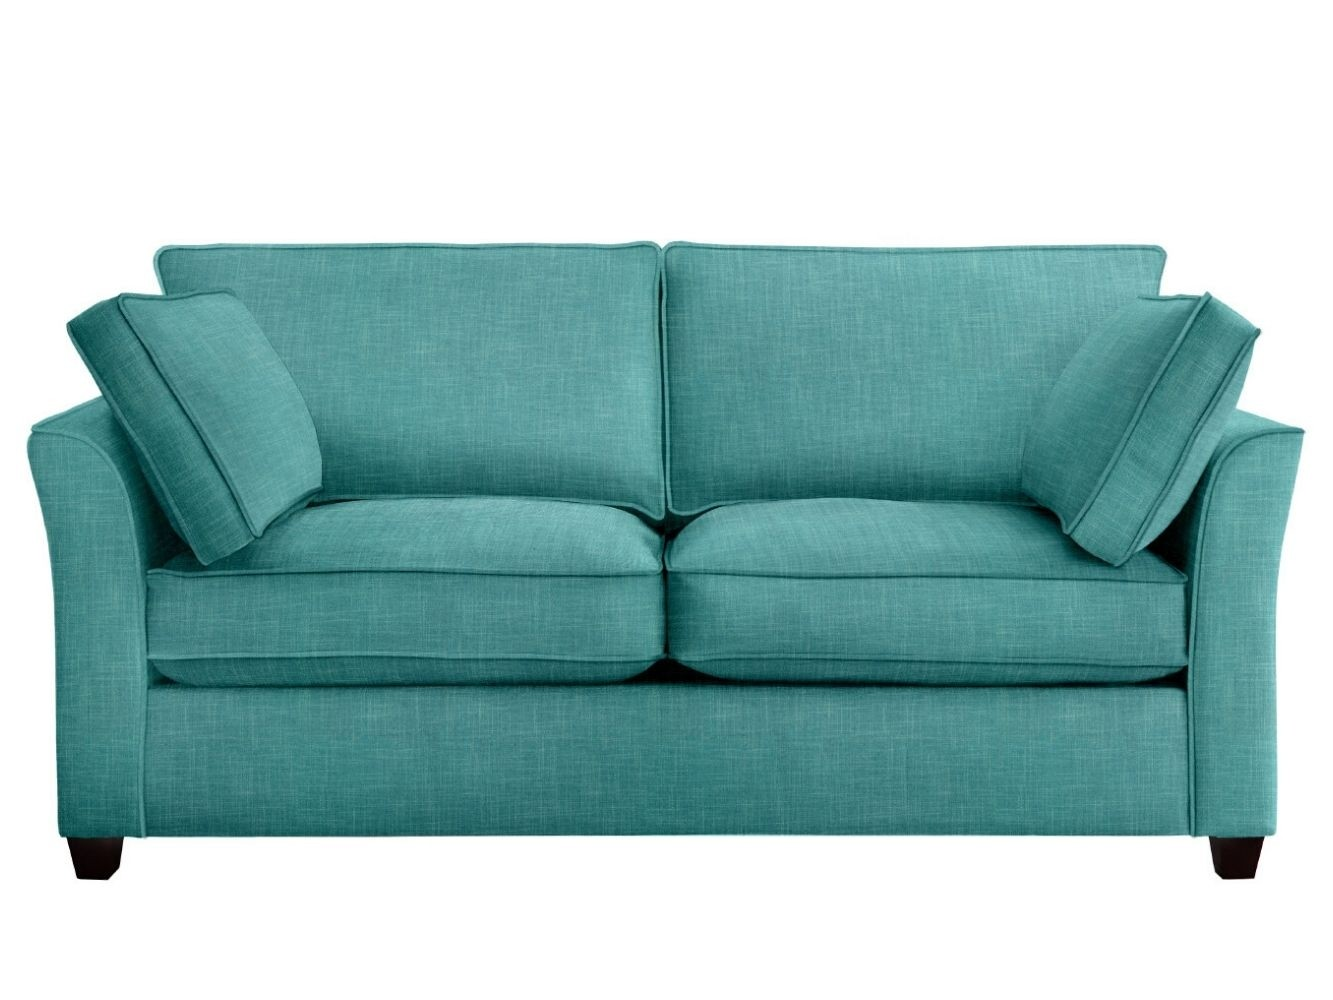 This is how I look in Linen Azure (Discontinued Fabric) with siliconized hollow fibre seat cushions